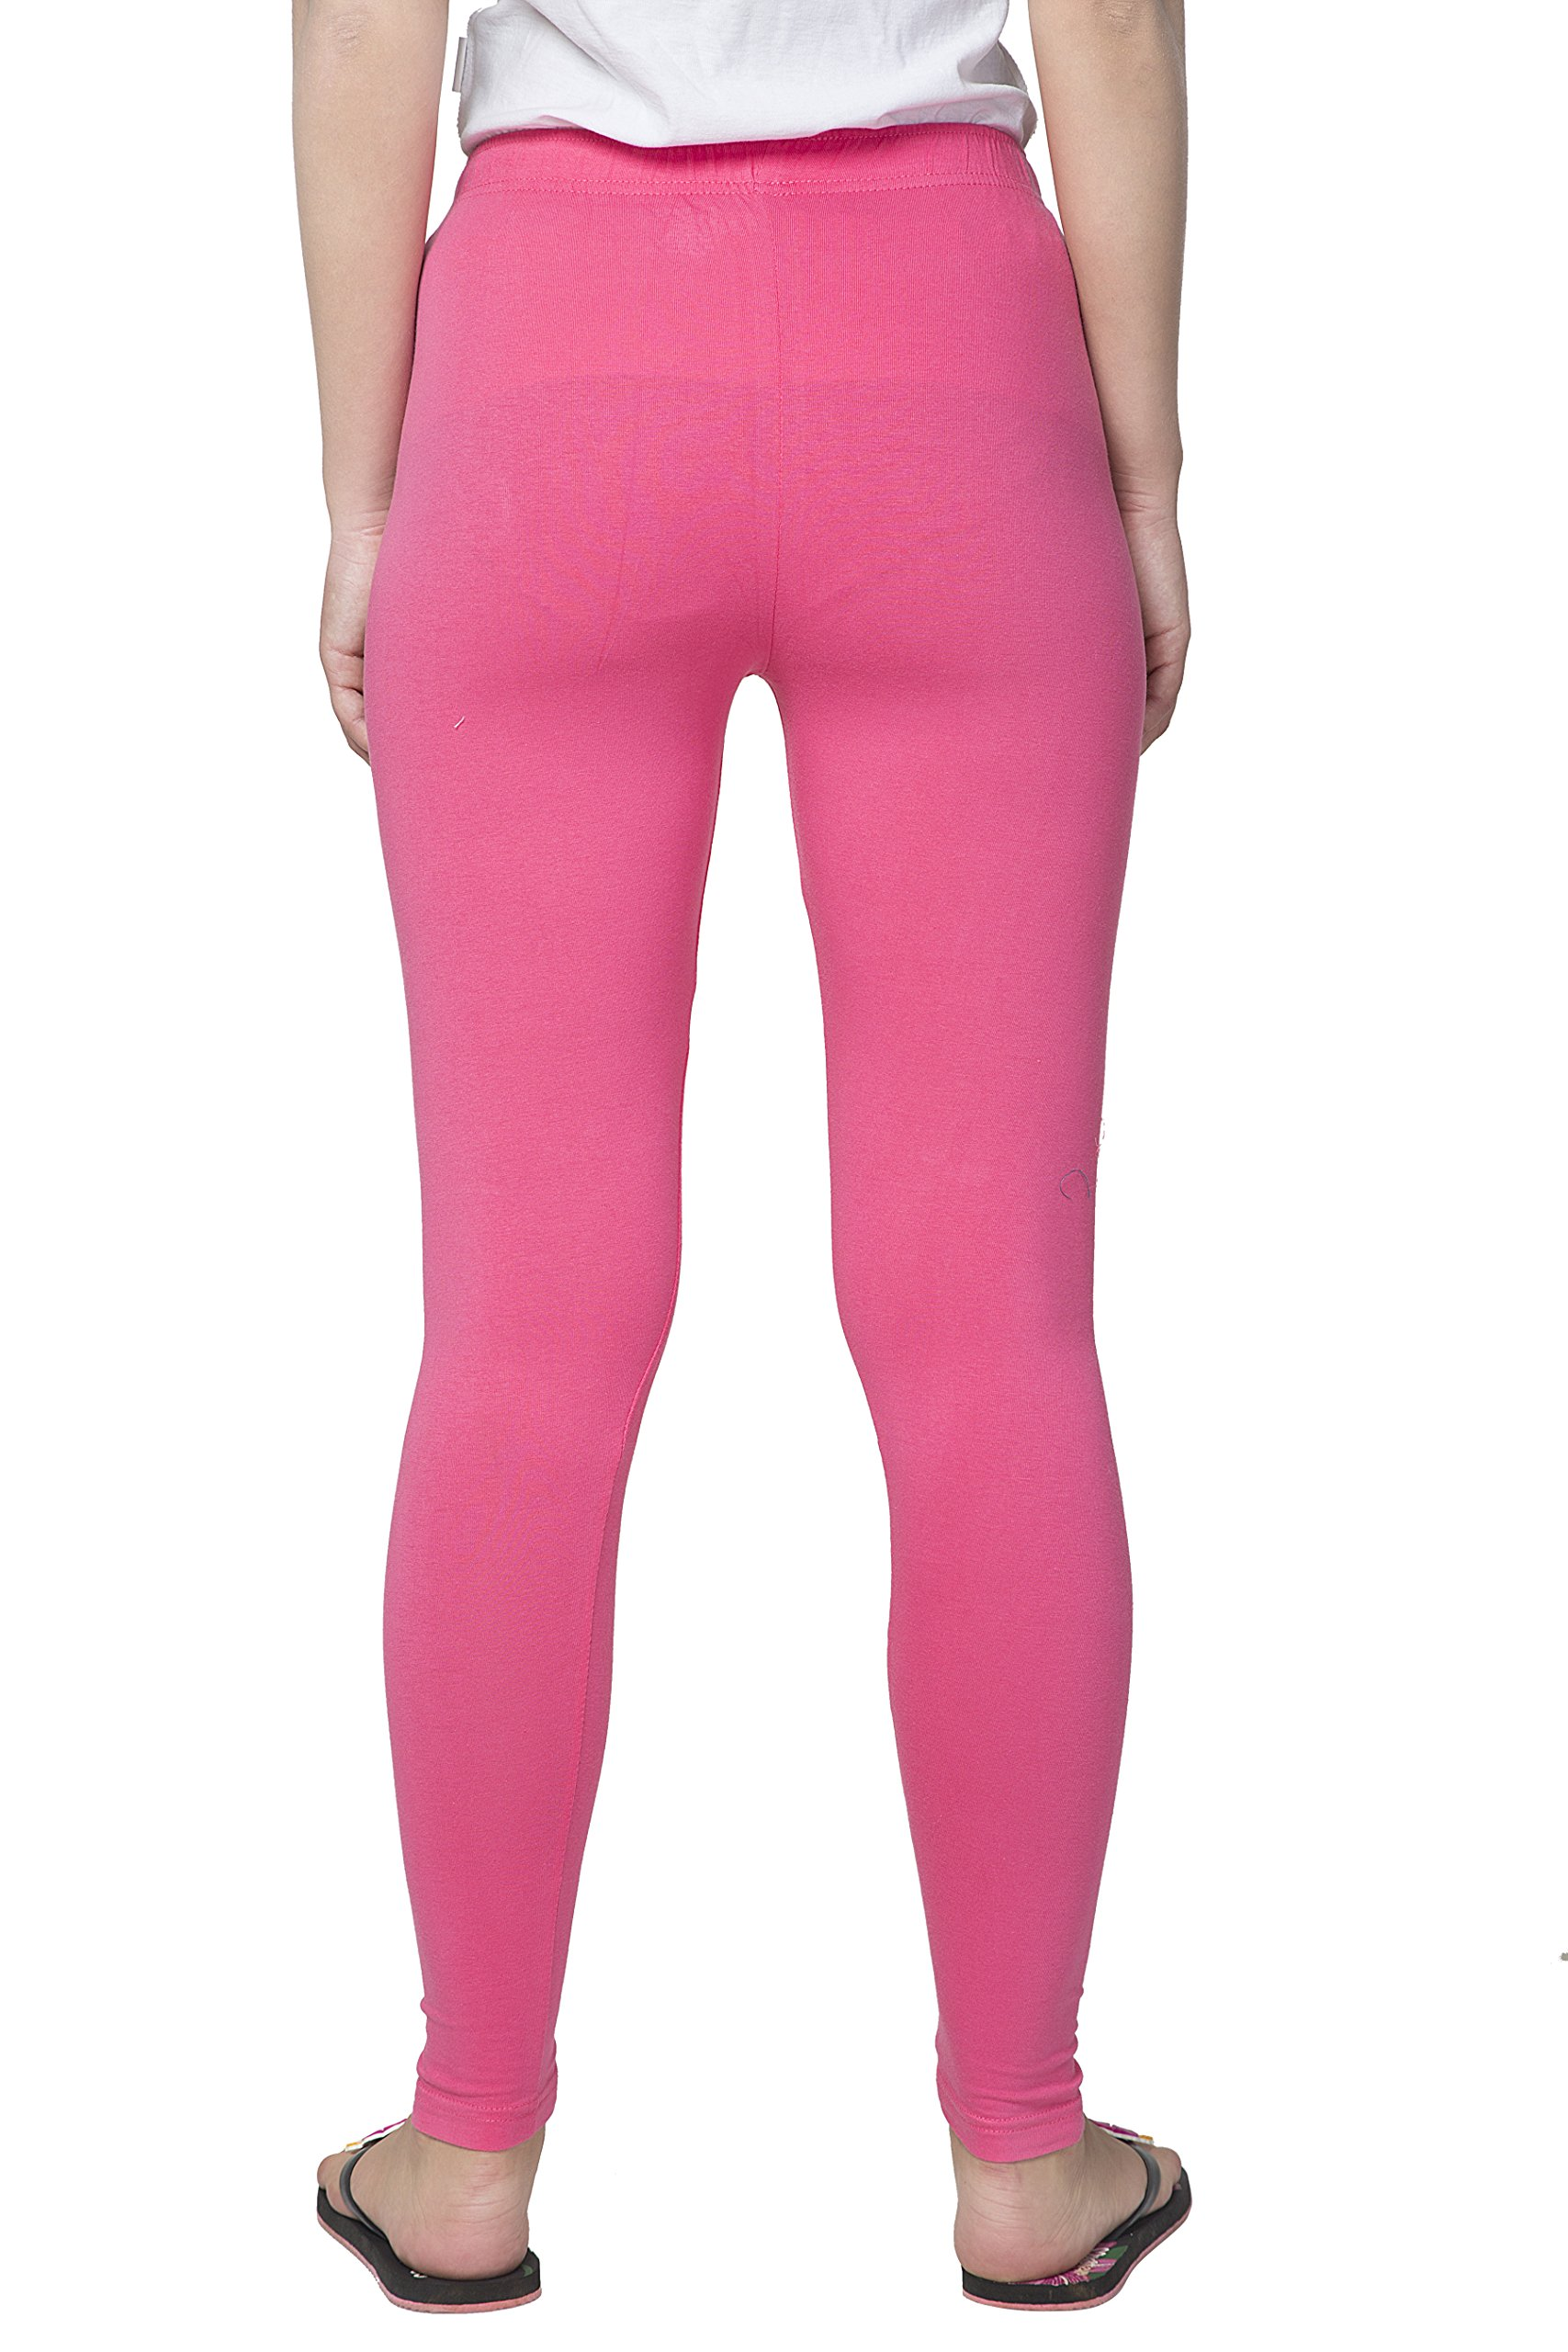 Clifton Women's Cotton Spandex Fine Jersey Leggings Pack Of 4-Assorted-2-XL by Clifton (Image #3)